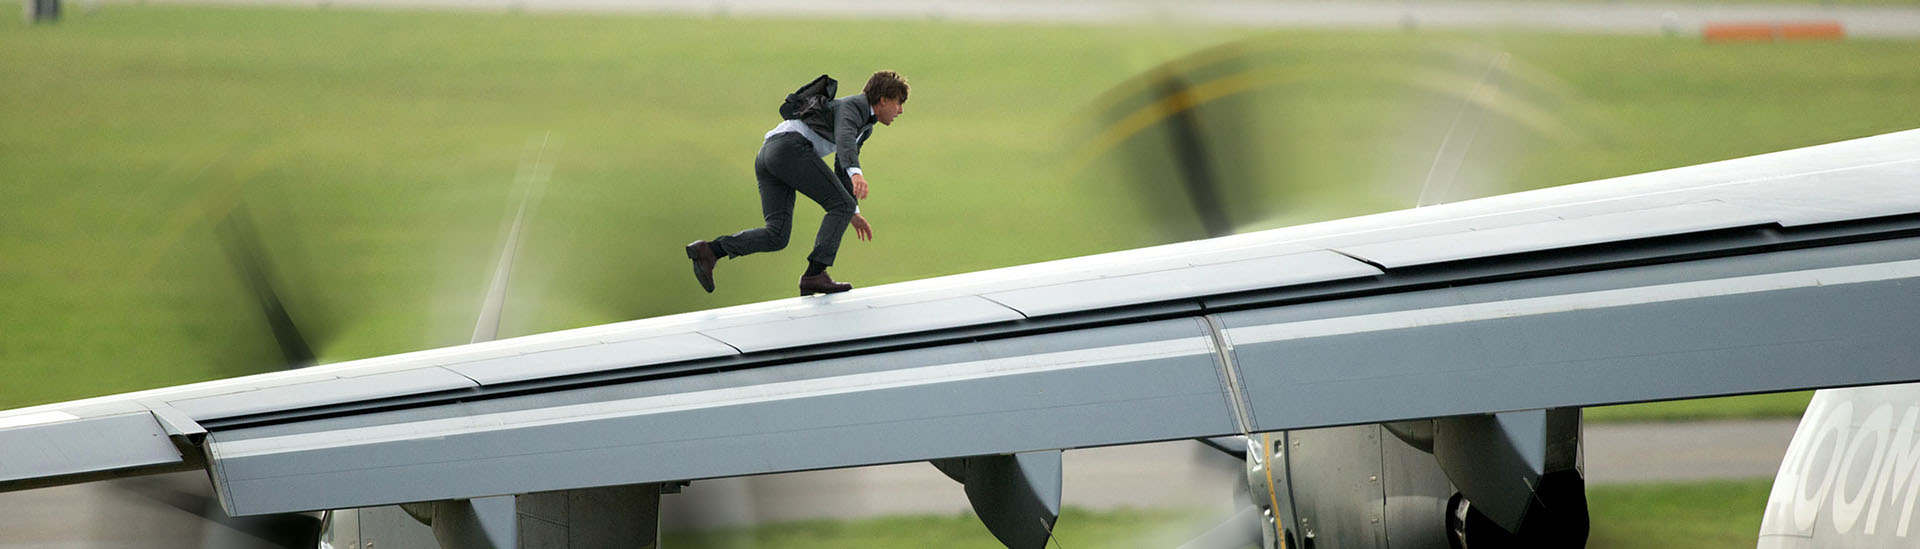 Baner filmu 'Mission: Impossible - Rogue Nation'